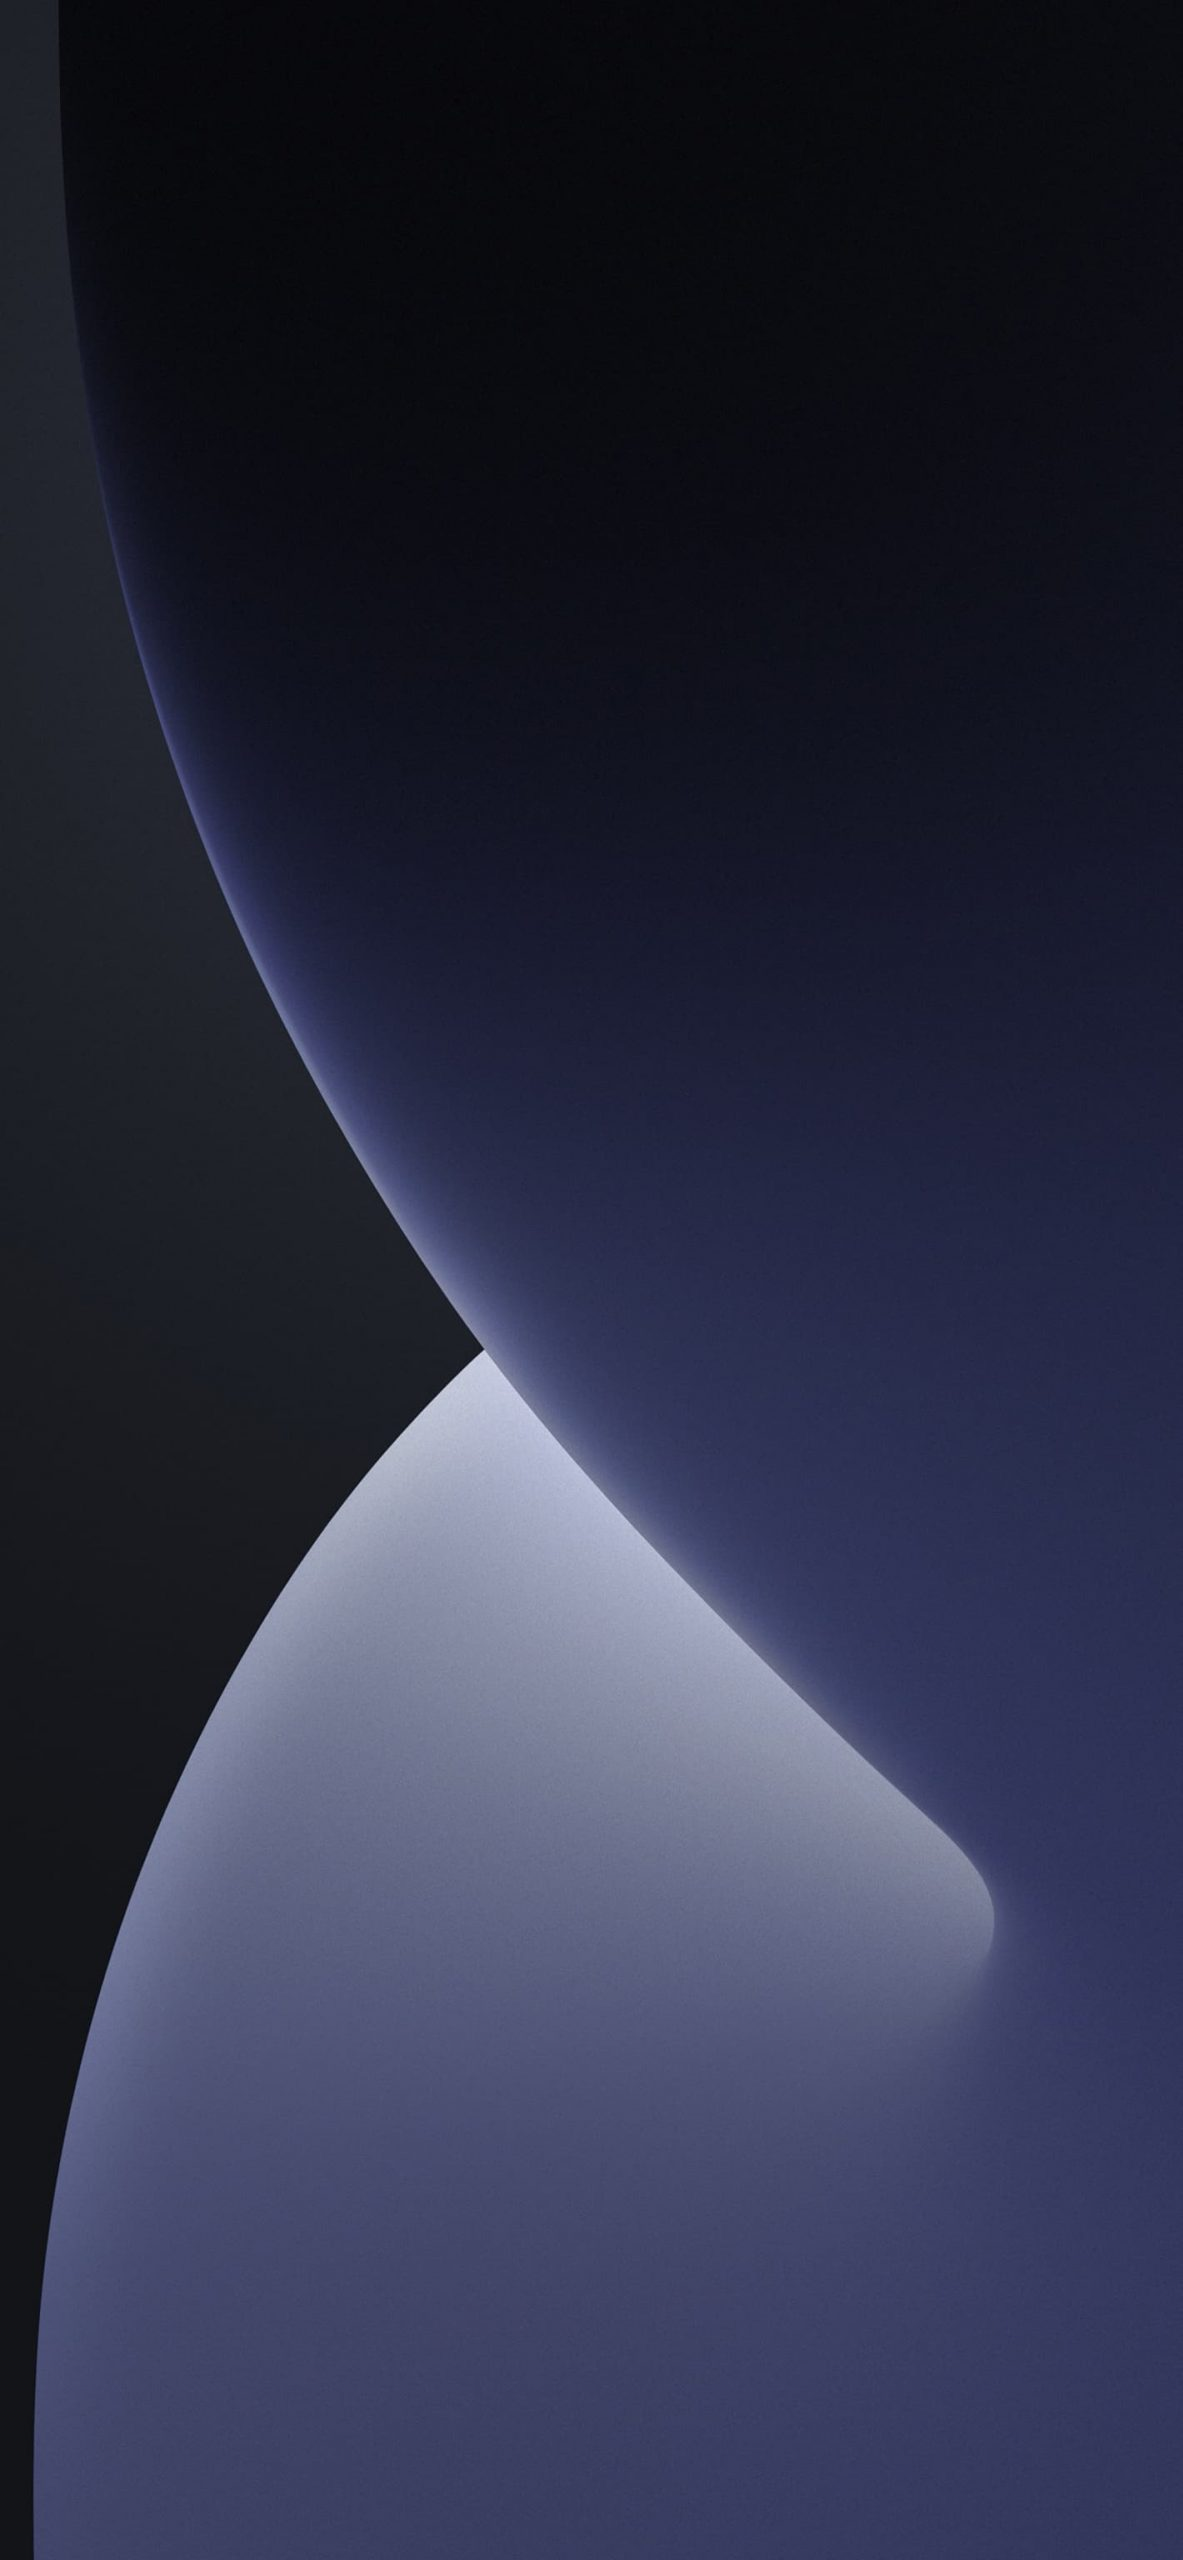 ios 14 wallpapers6 scaled iOS 14 Wallpapers